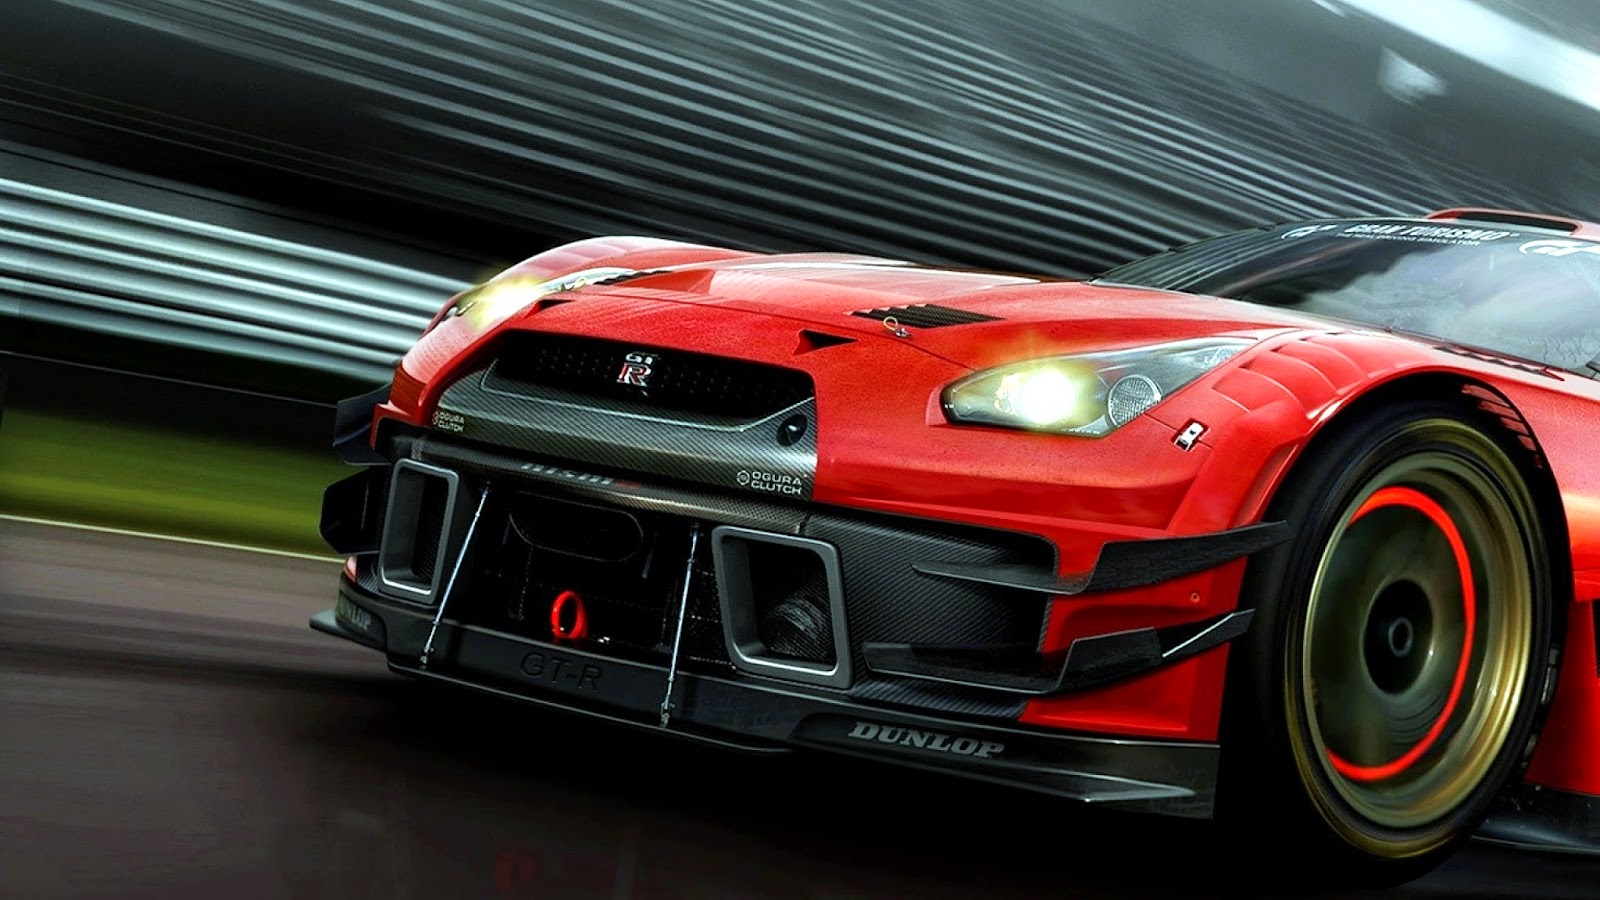 Cars Wallpapers: Nissan GTR - Wallpaper Hd